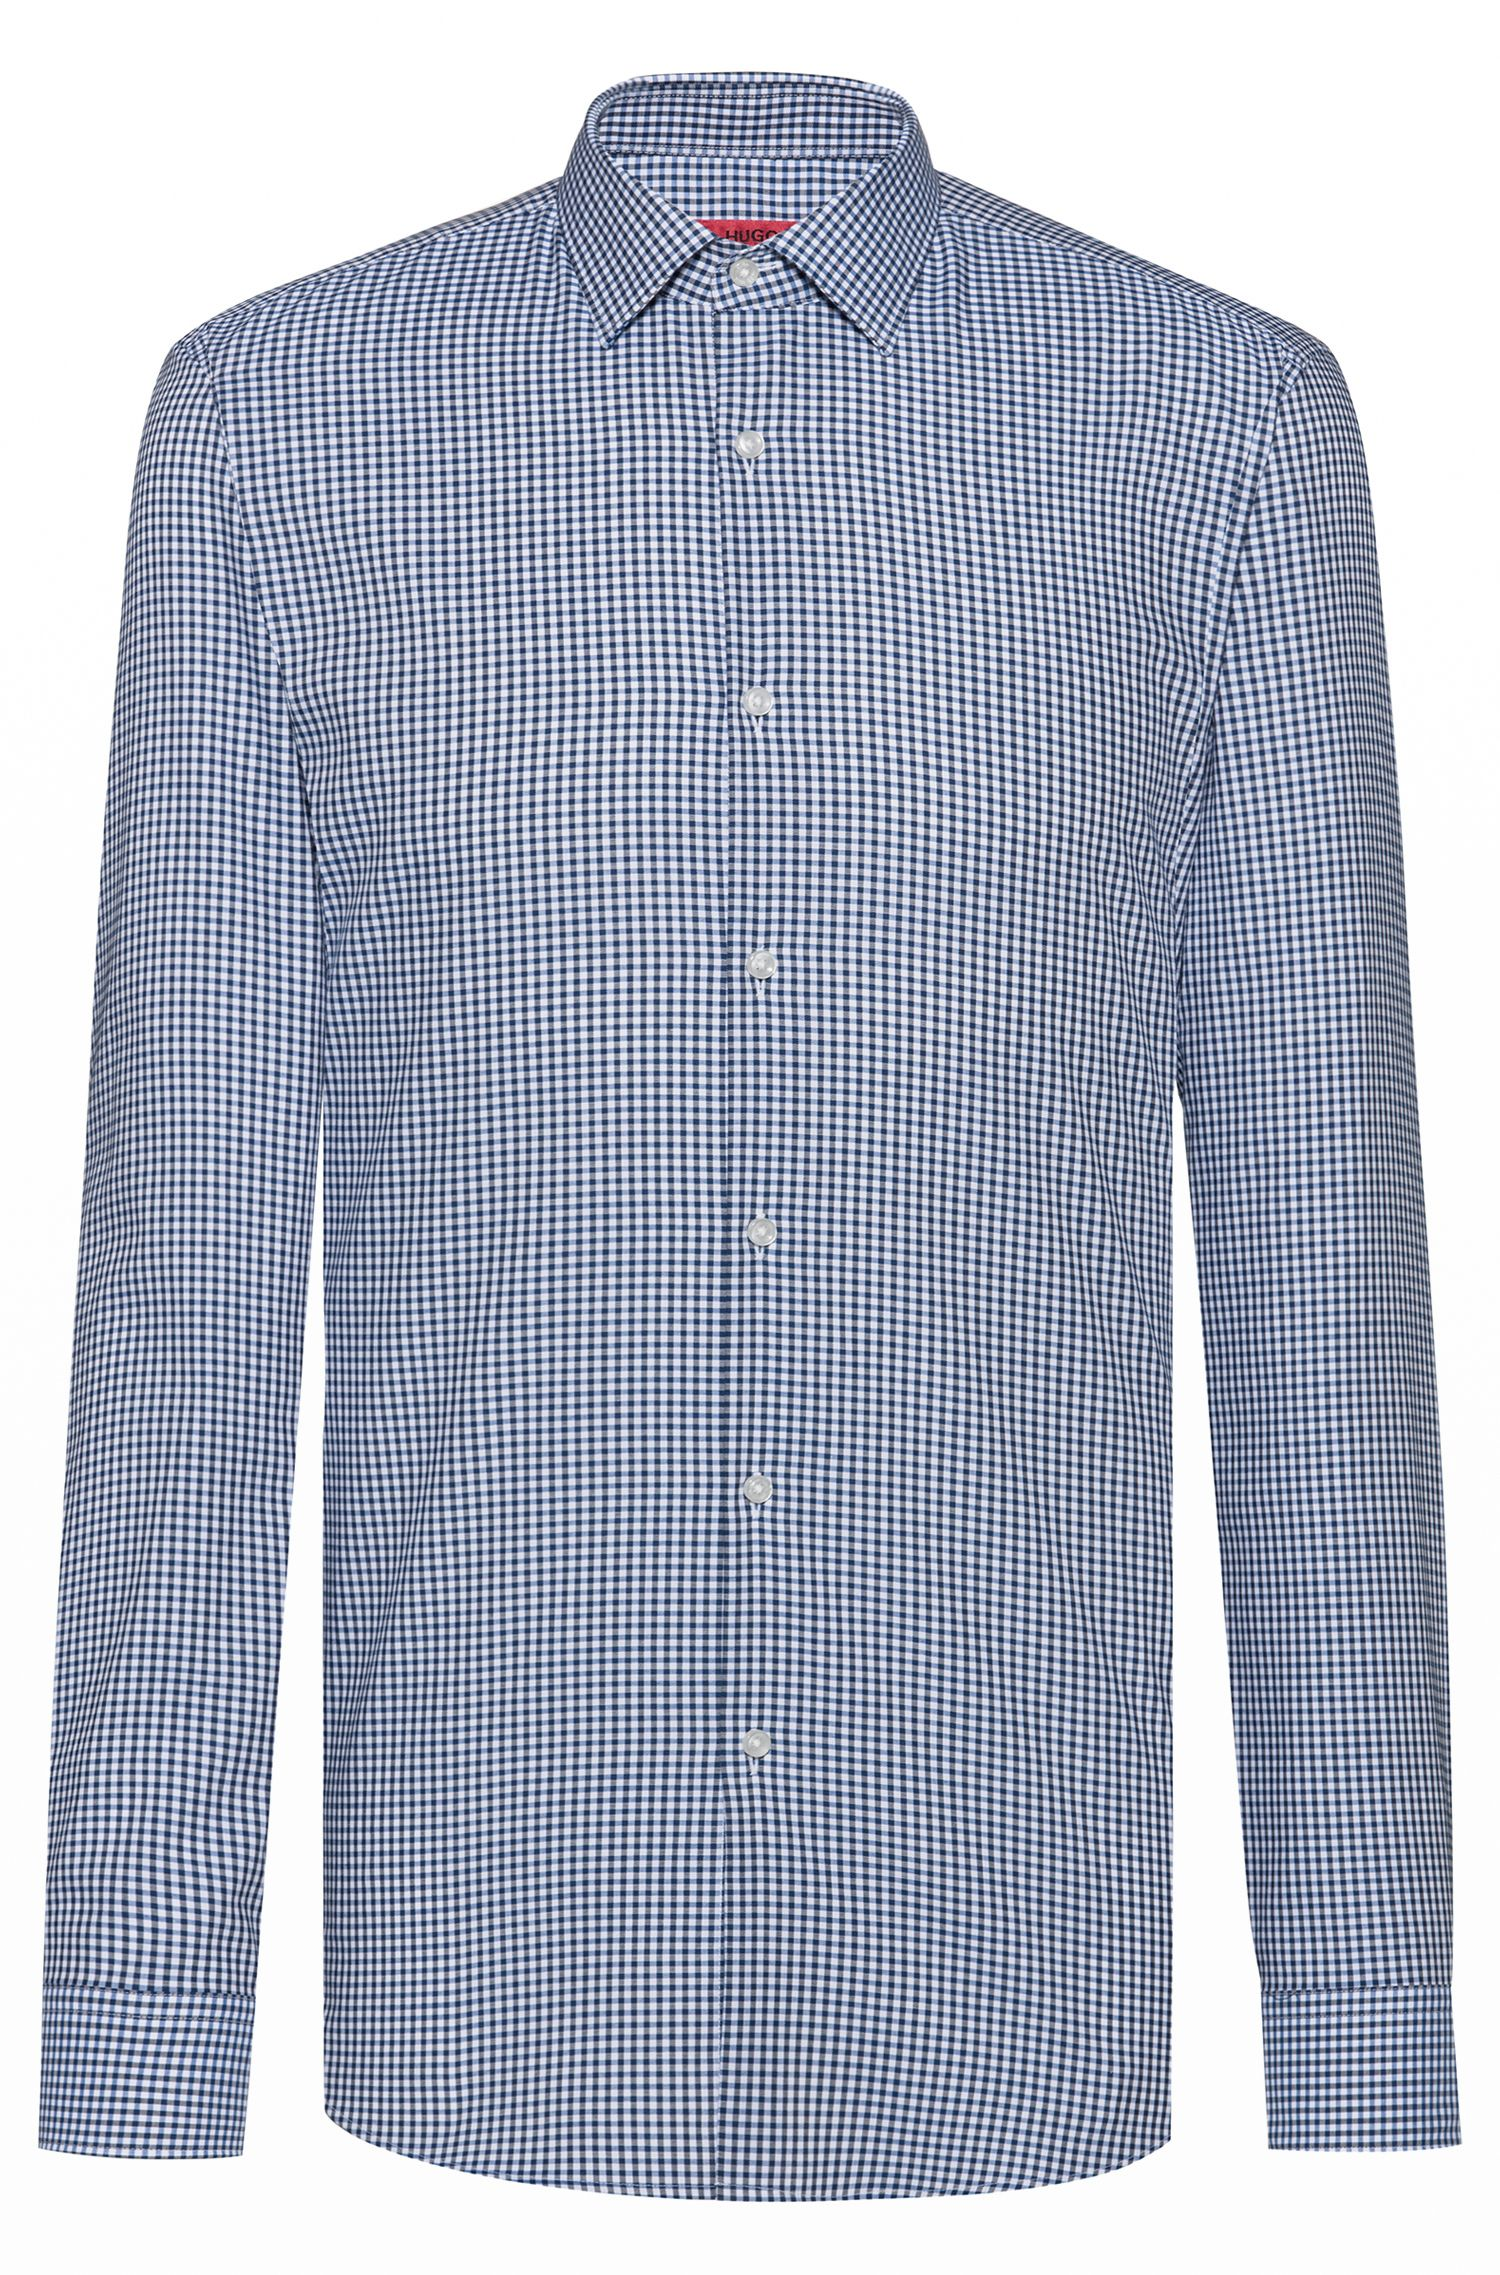 Camicia slim fit a quadri in cotone facile da stirare, A disegni